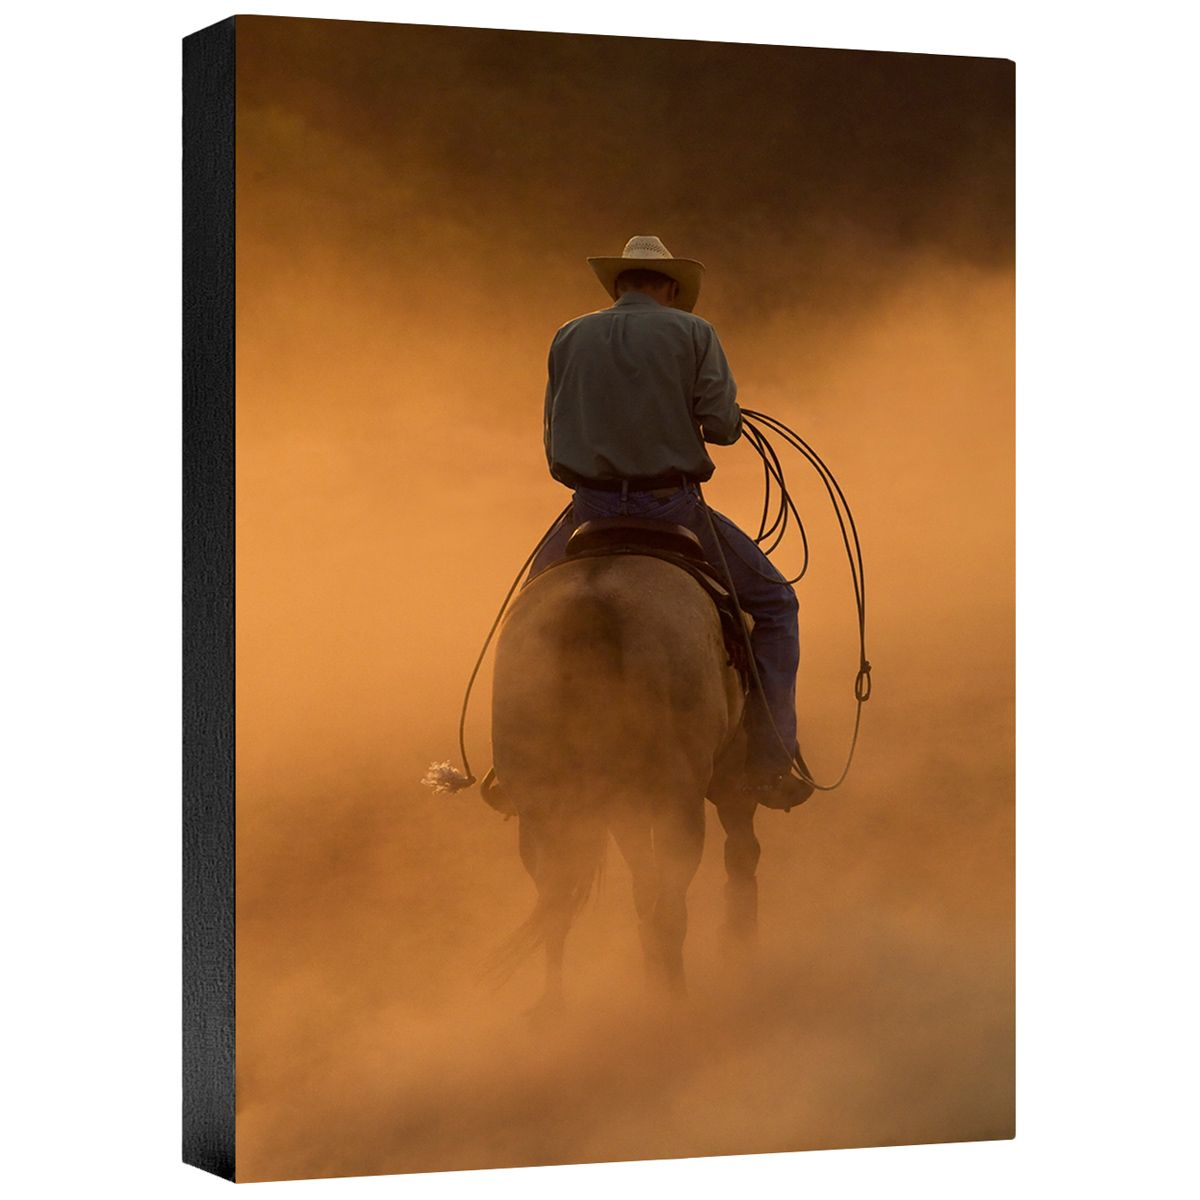 Teo on the Ranch Gallery Wrapped Canvas